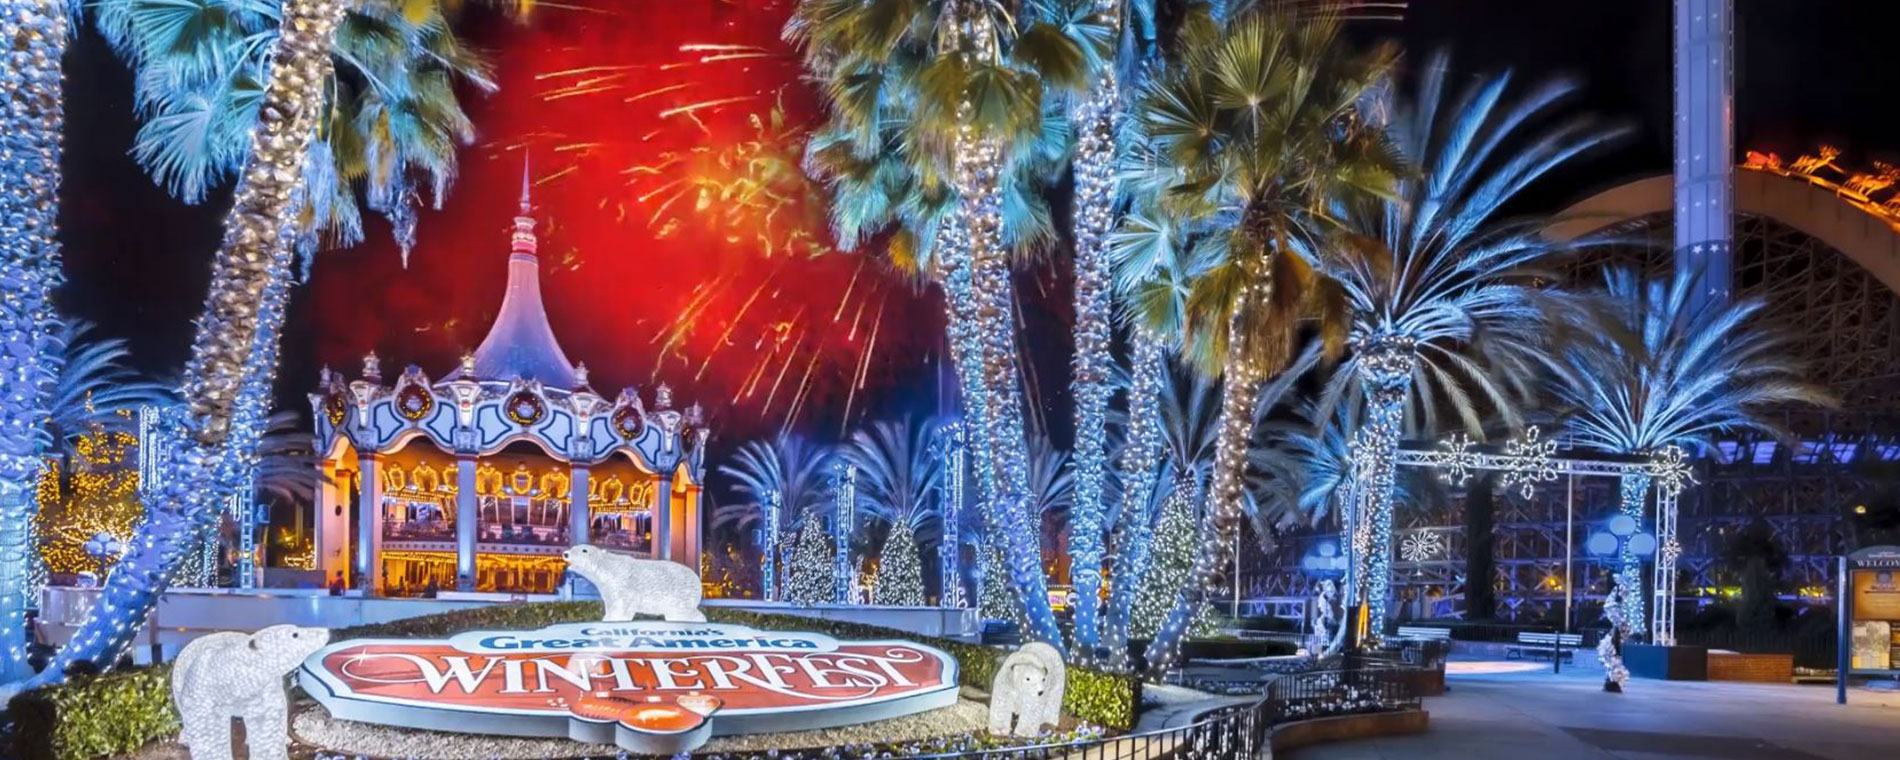 New Year's Eve Celebration at Great America's Holiday Event